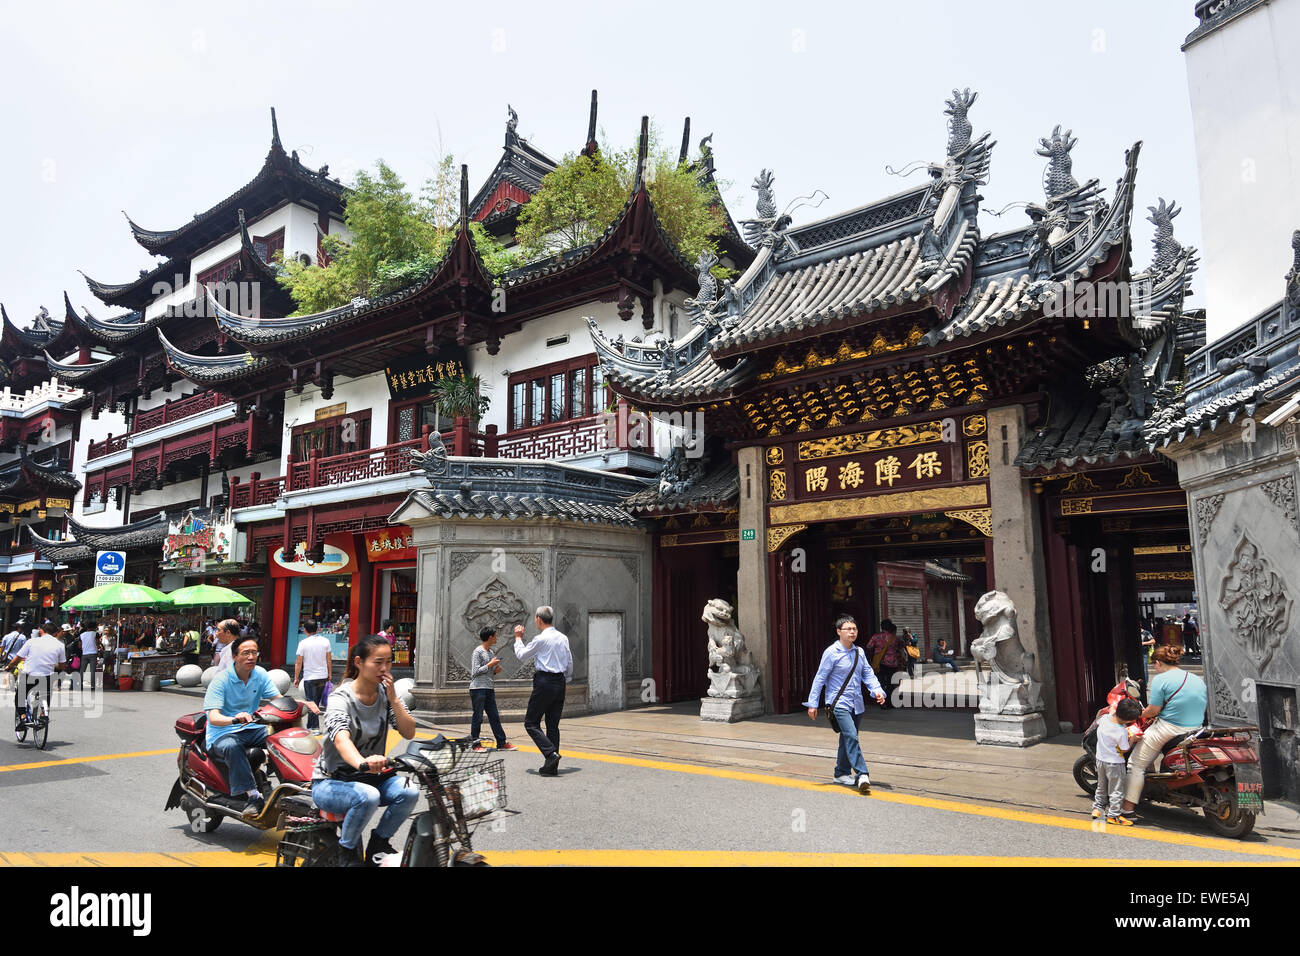 Yuyuan garden bazaar old city shopping area shanghai china for Shopping in cina